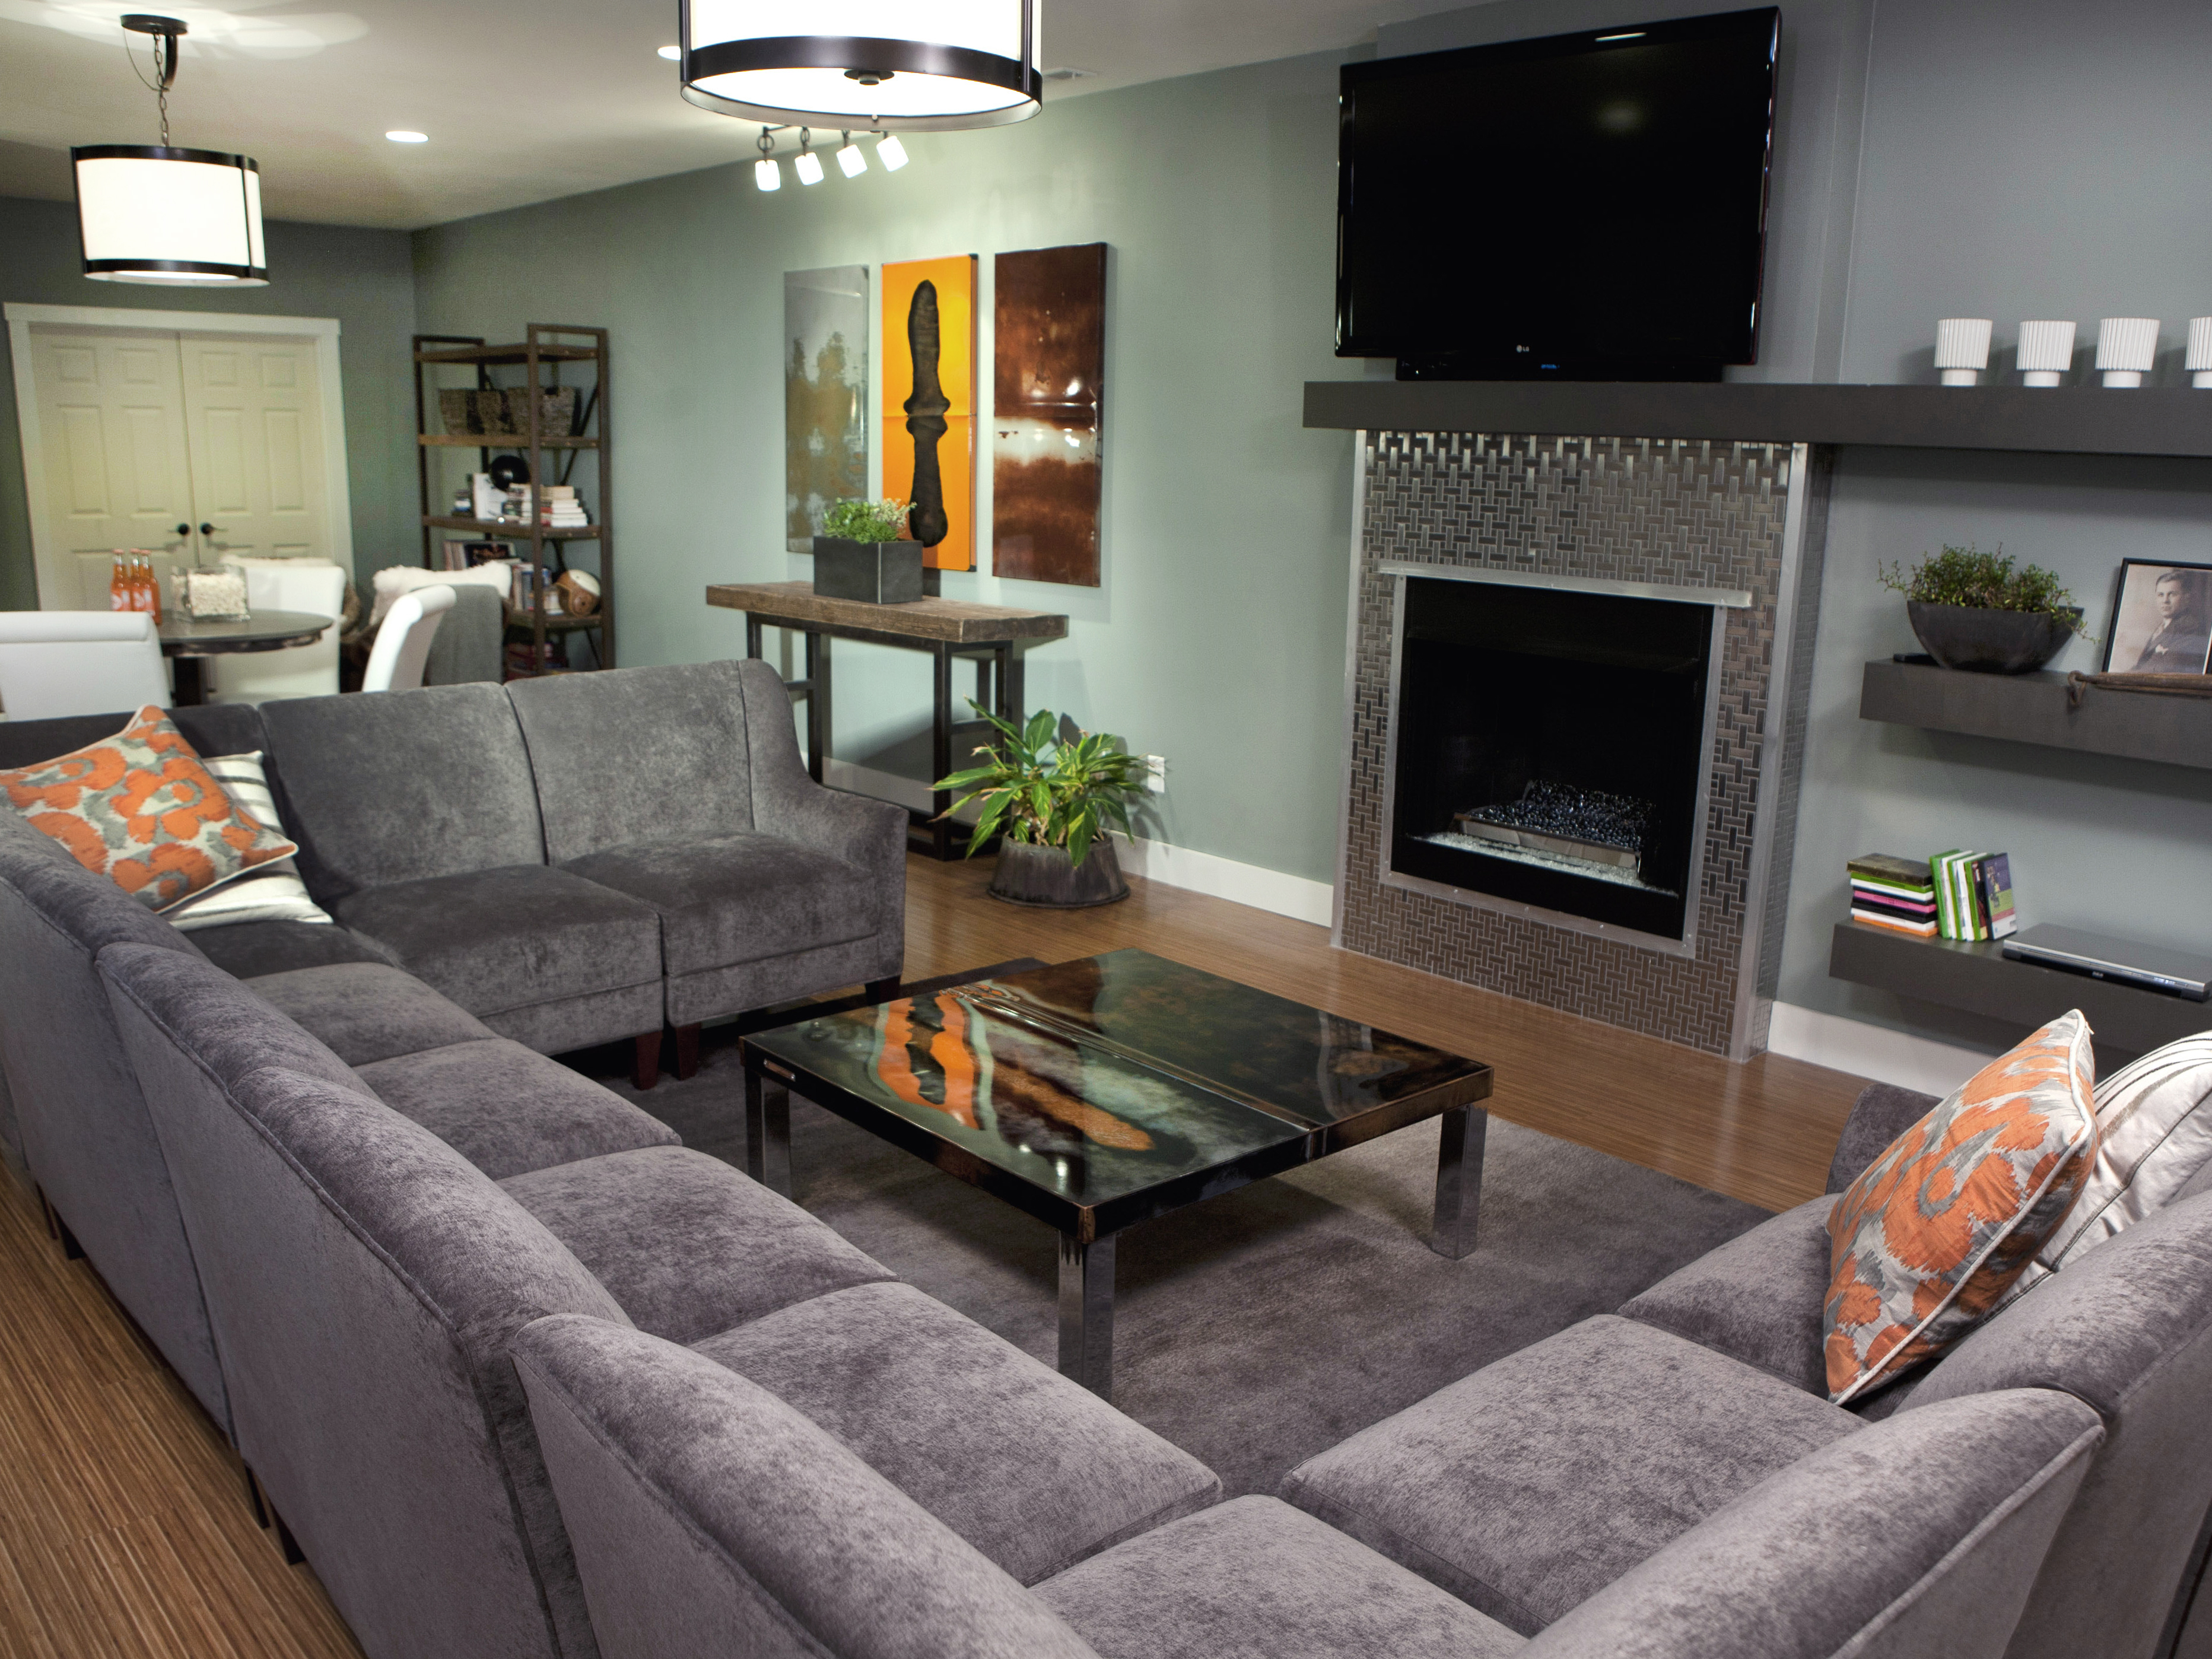 Large Sectional Sofas with Recliners | Leather Sectional | Large Sectional Sofas